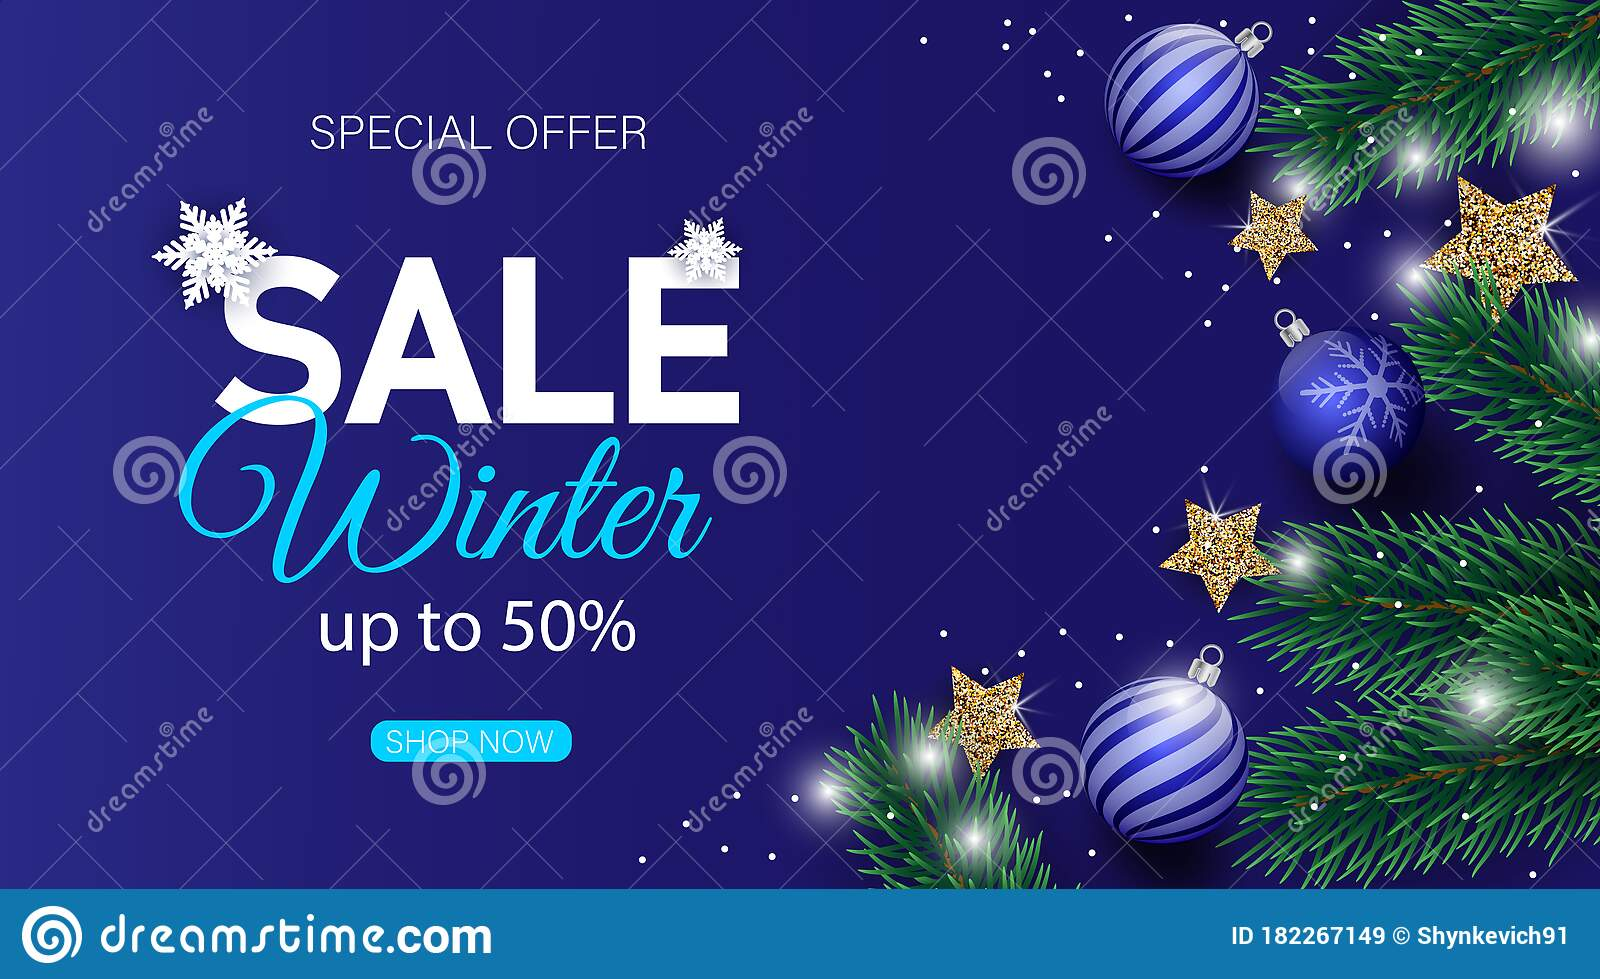 Winter Sale Banner Decorated With Christmas Tree Branches And Snow Stock Illustration Illustration Of Blue Christmas 182267149